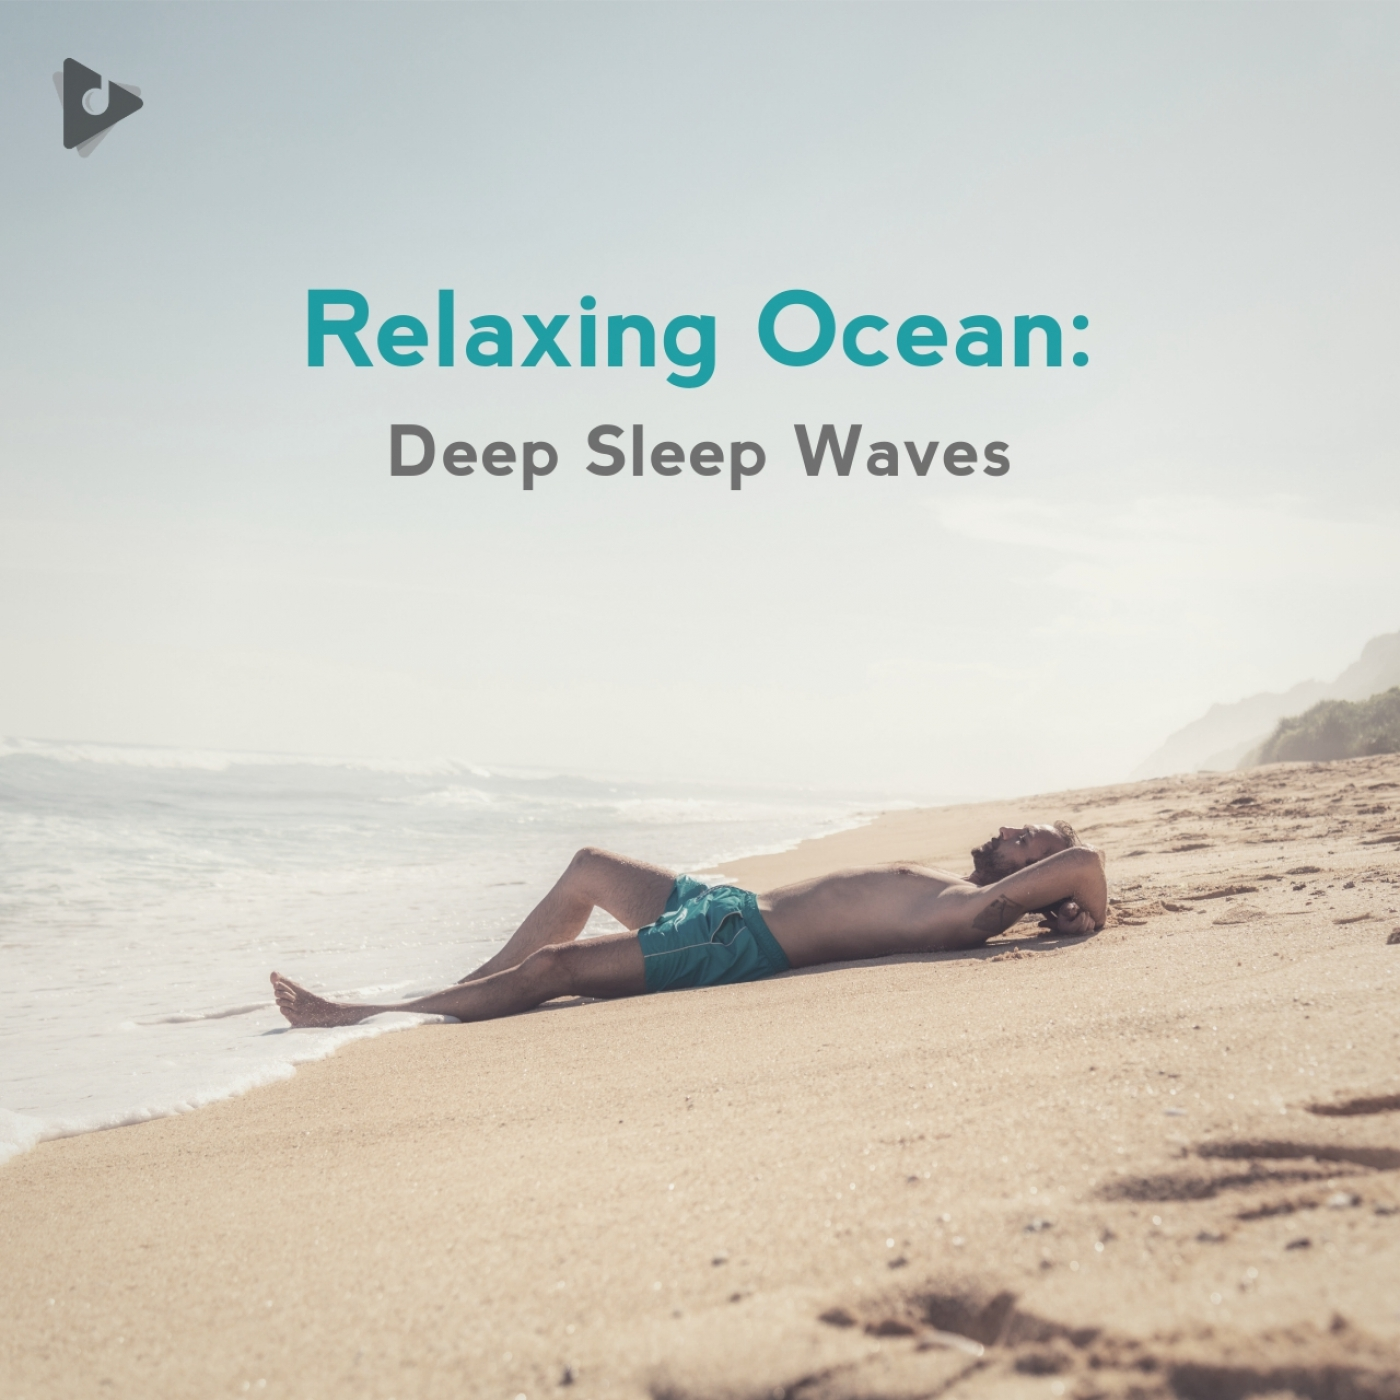 Relaxing Ocean: Deep Sleep Waves